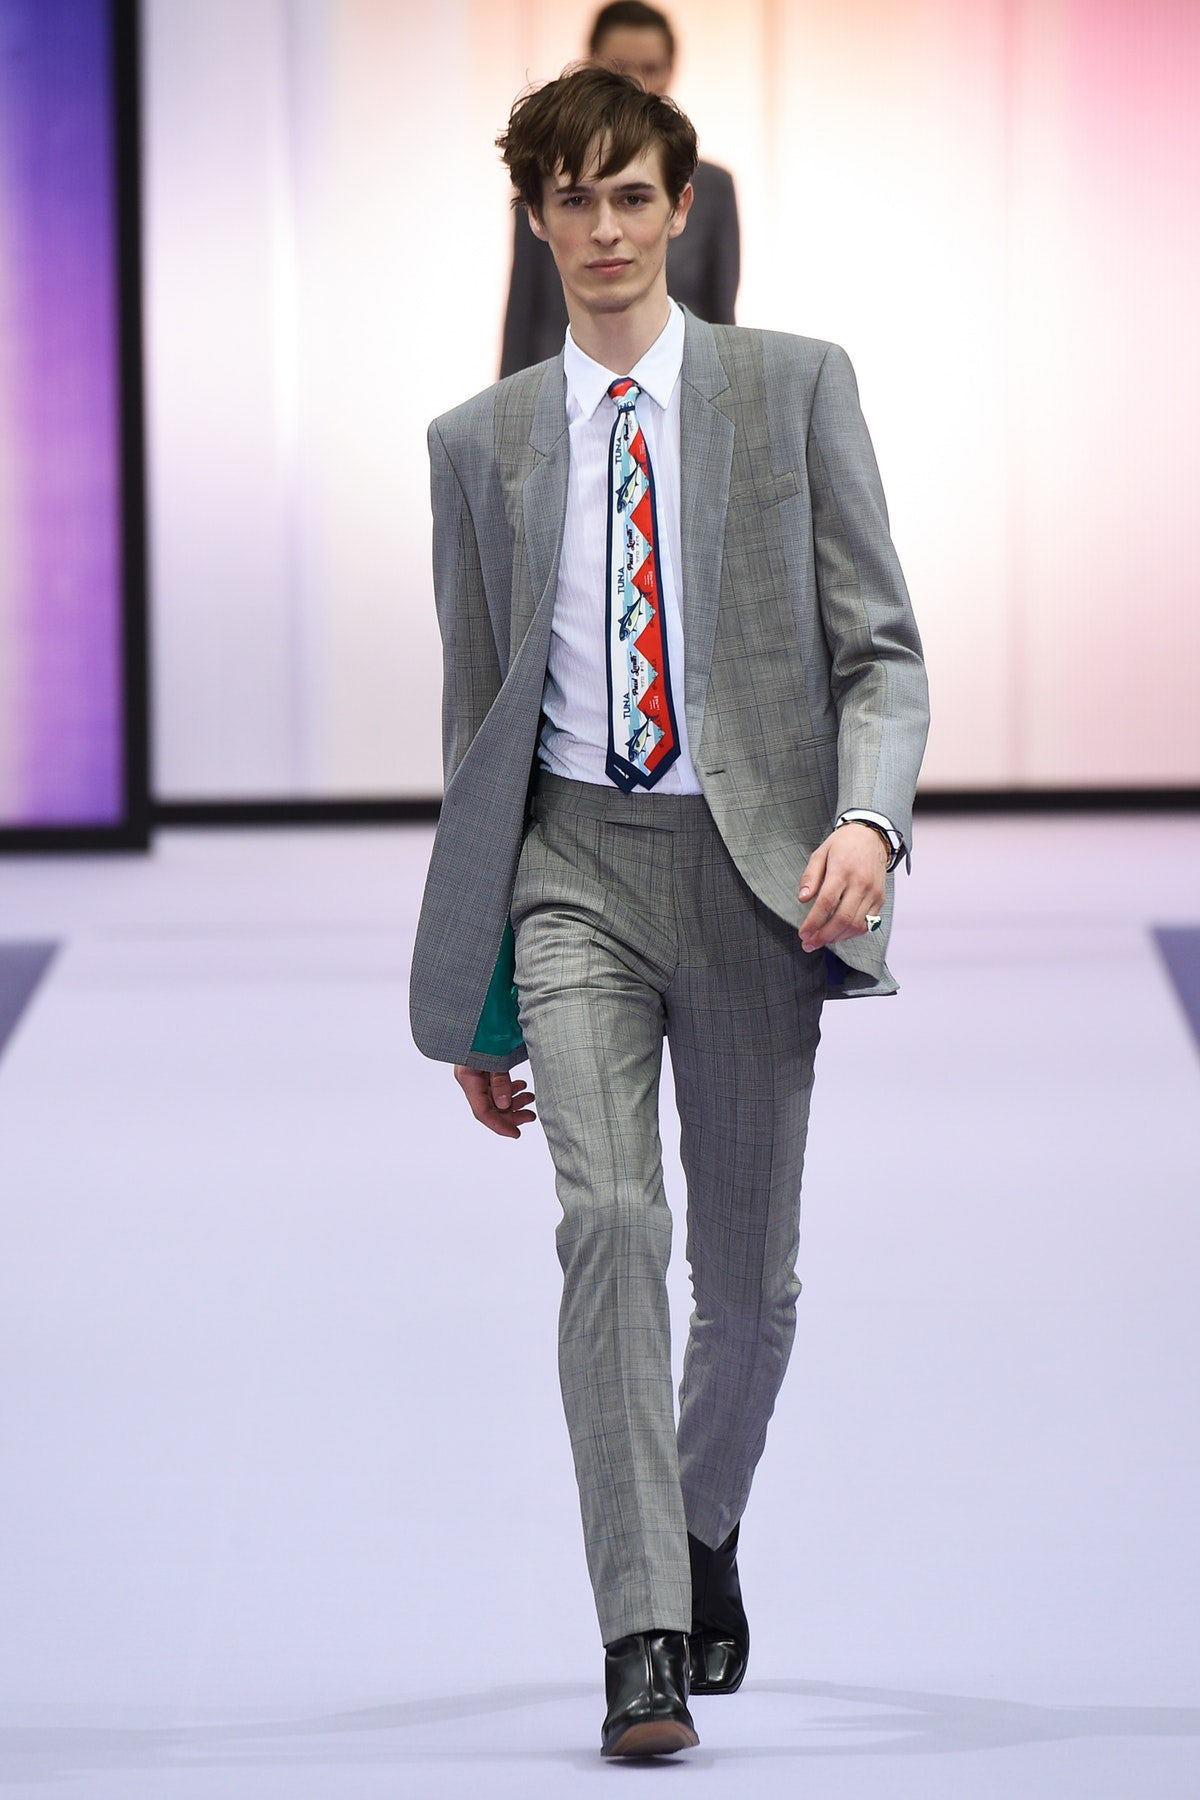 Paul Smith Spring/Summer 2017 | Source: Indigital